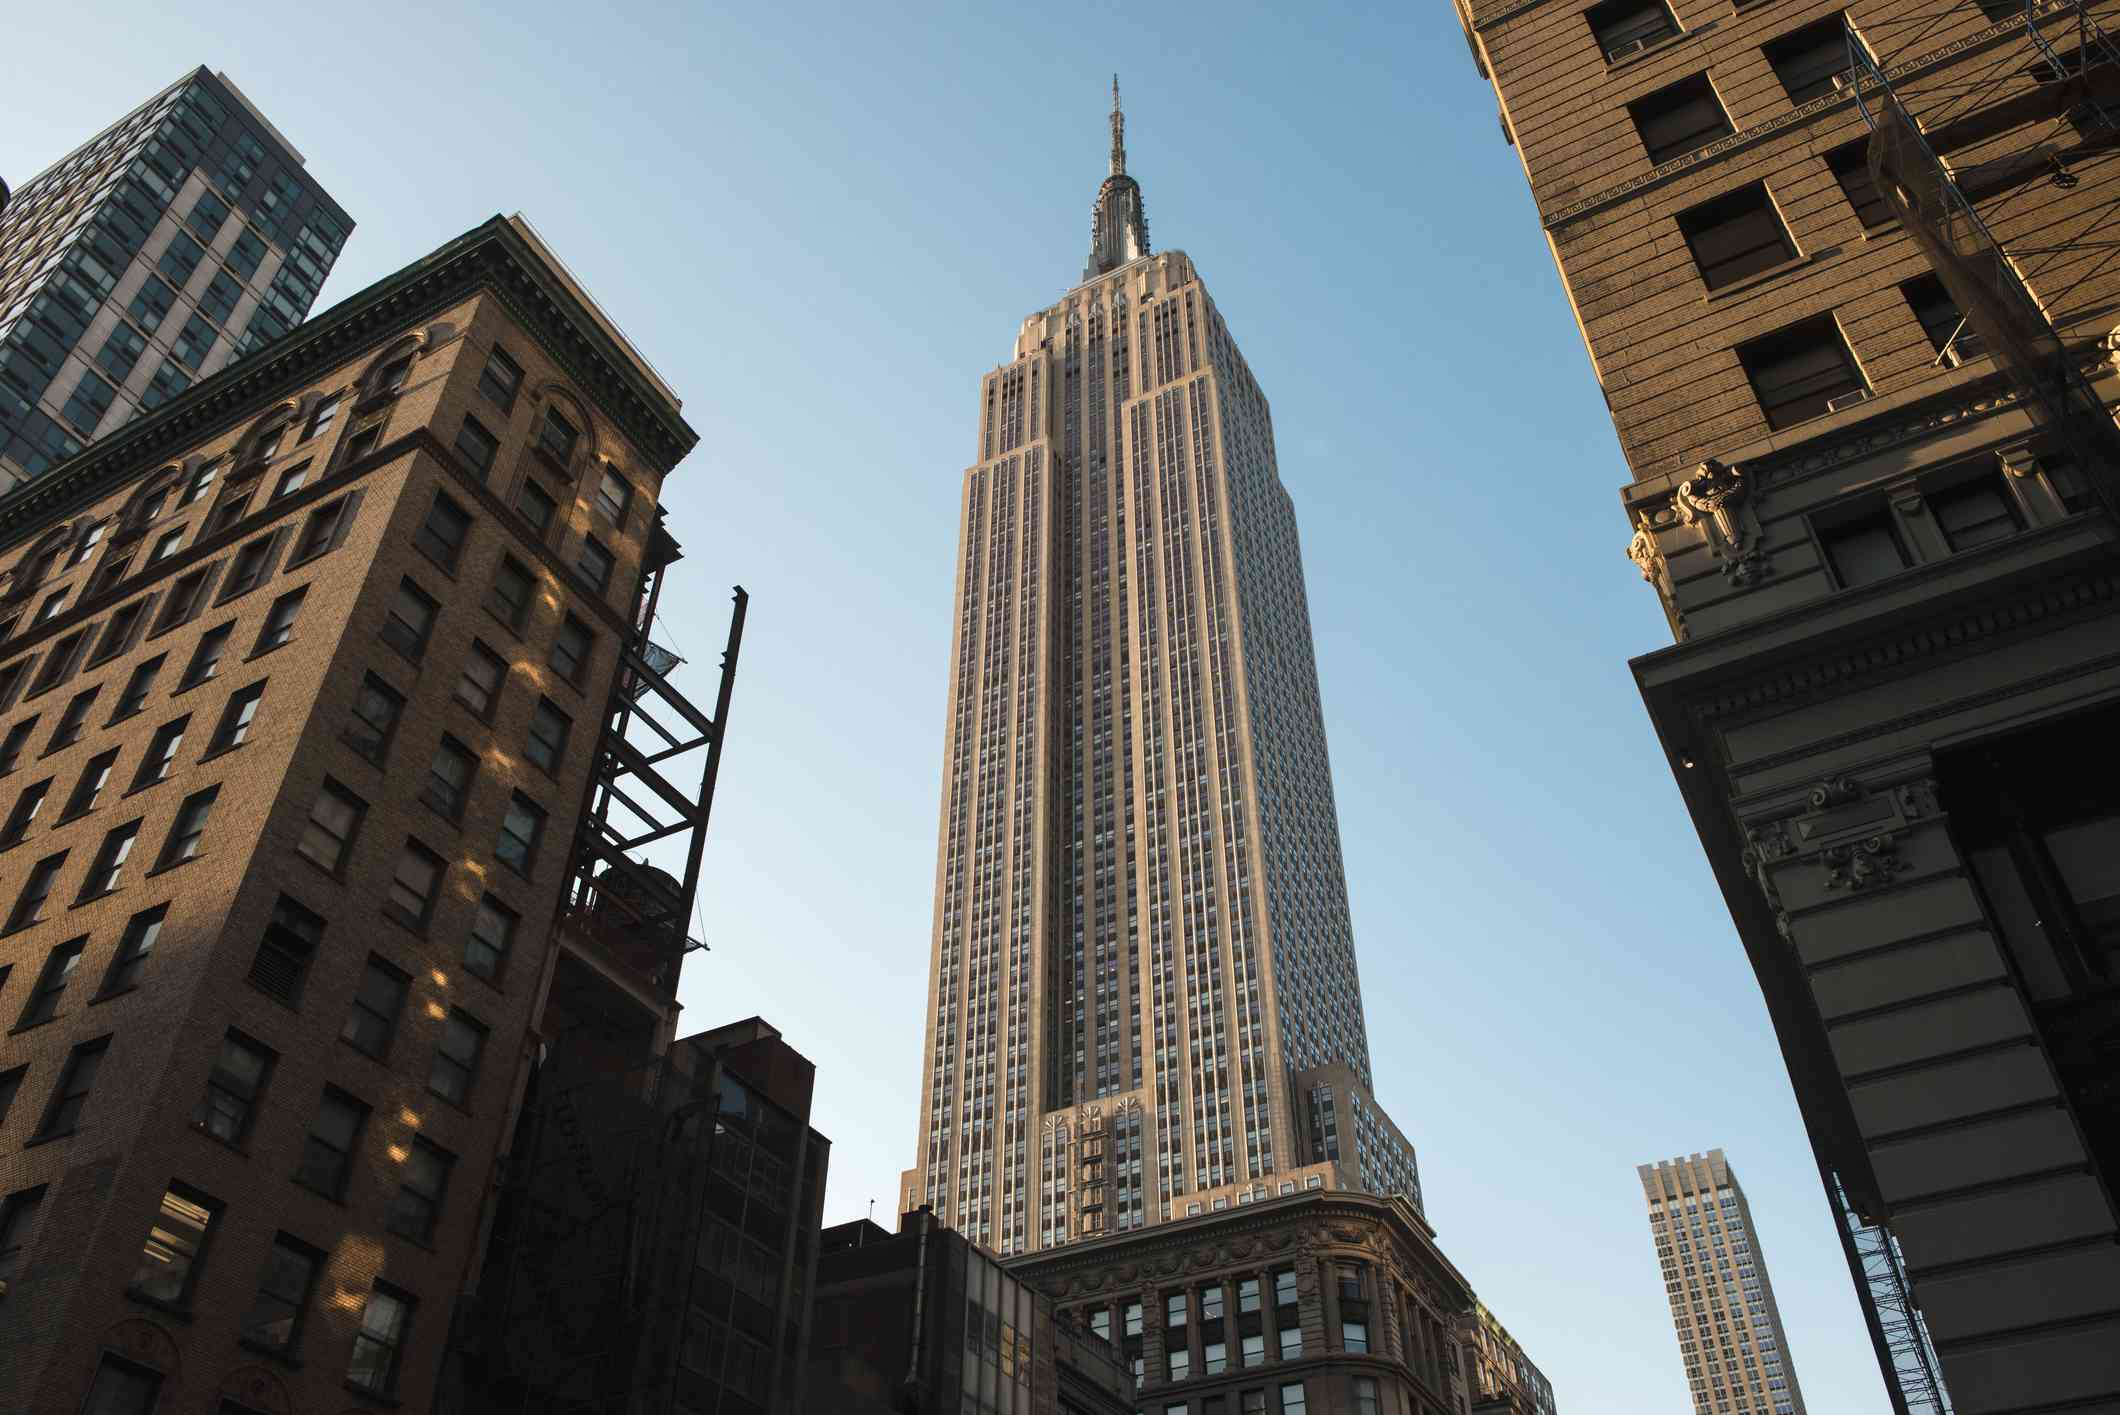 A shot of the Empire State Building from the ground.